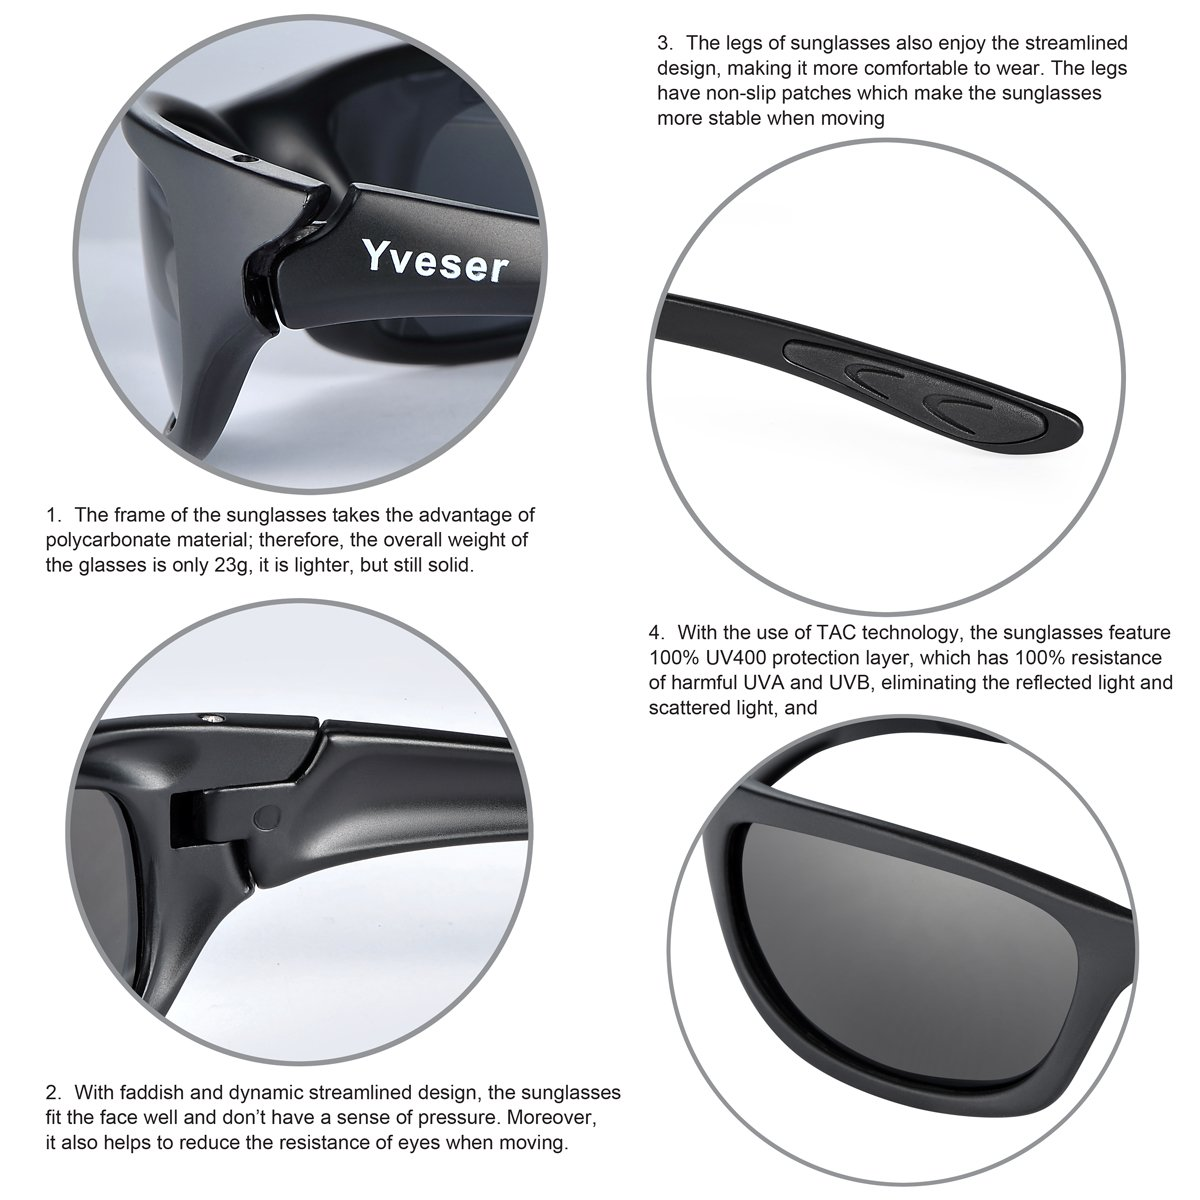 bf6656898f9 Yveser Polarised UV400 Sports Sunglasses for Men   Women - Baseball Running  Cycling Fishing Driving Hiking Ski Golf Yv148 (Black Lens Black Matte  Frame)  ...